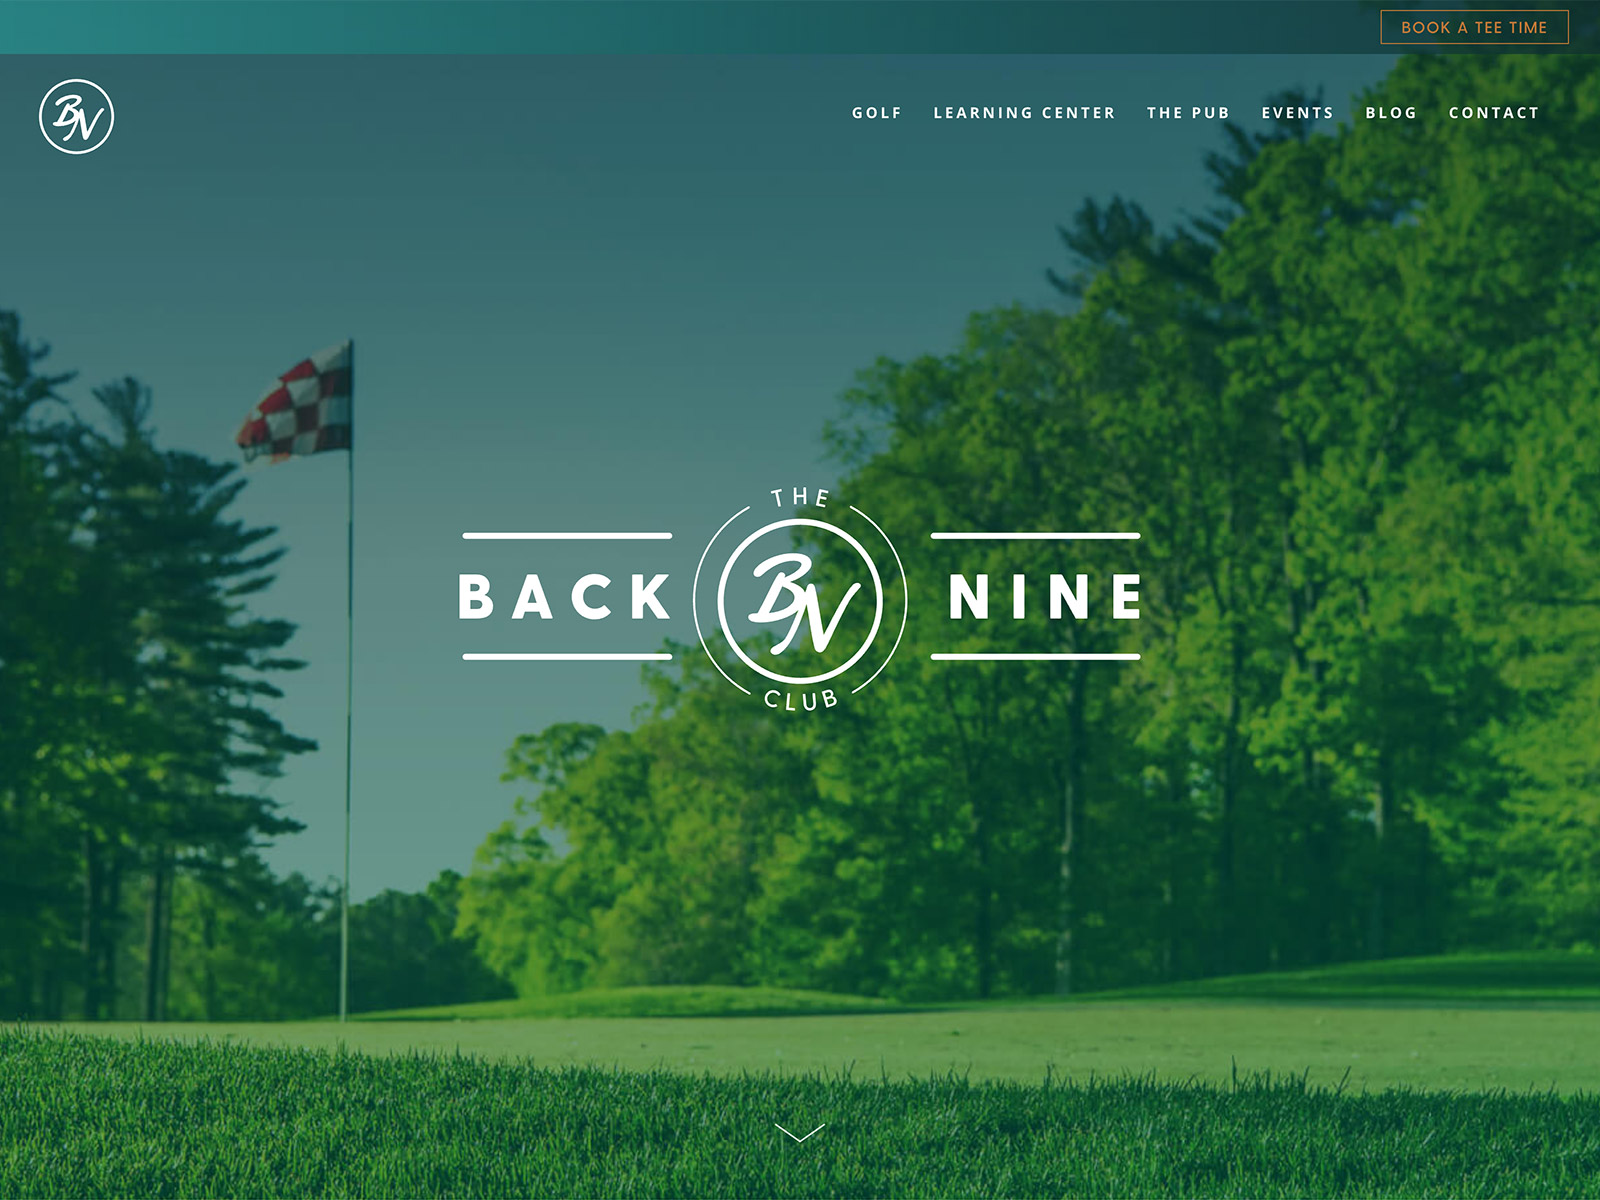 The Back Nine Club